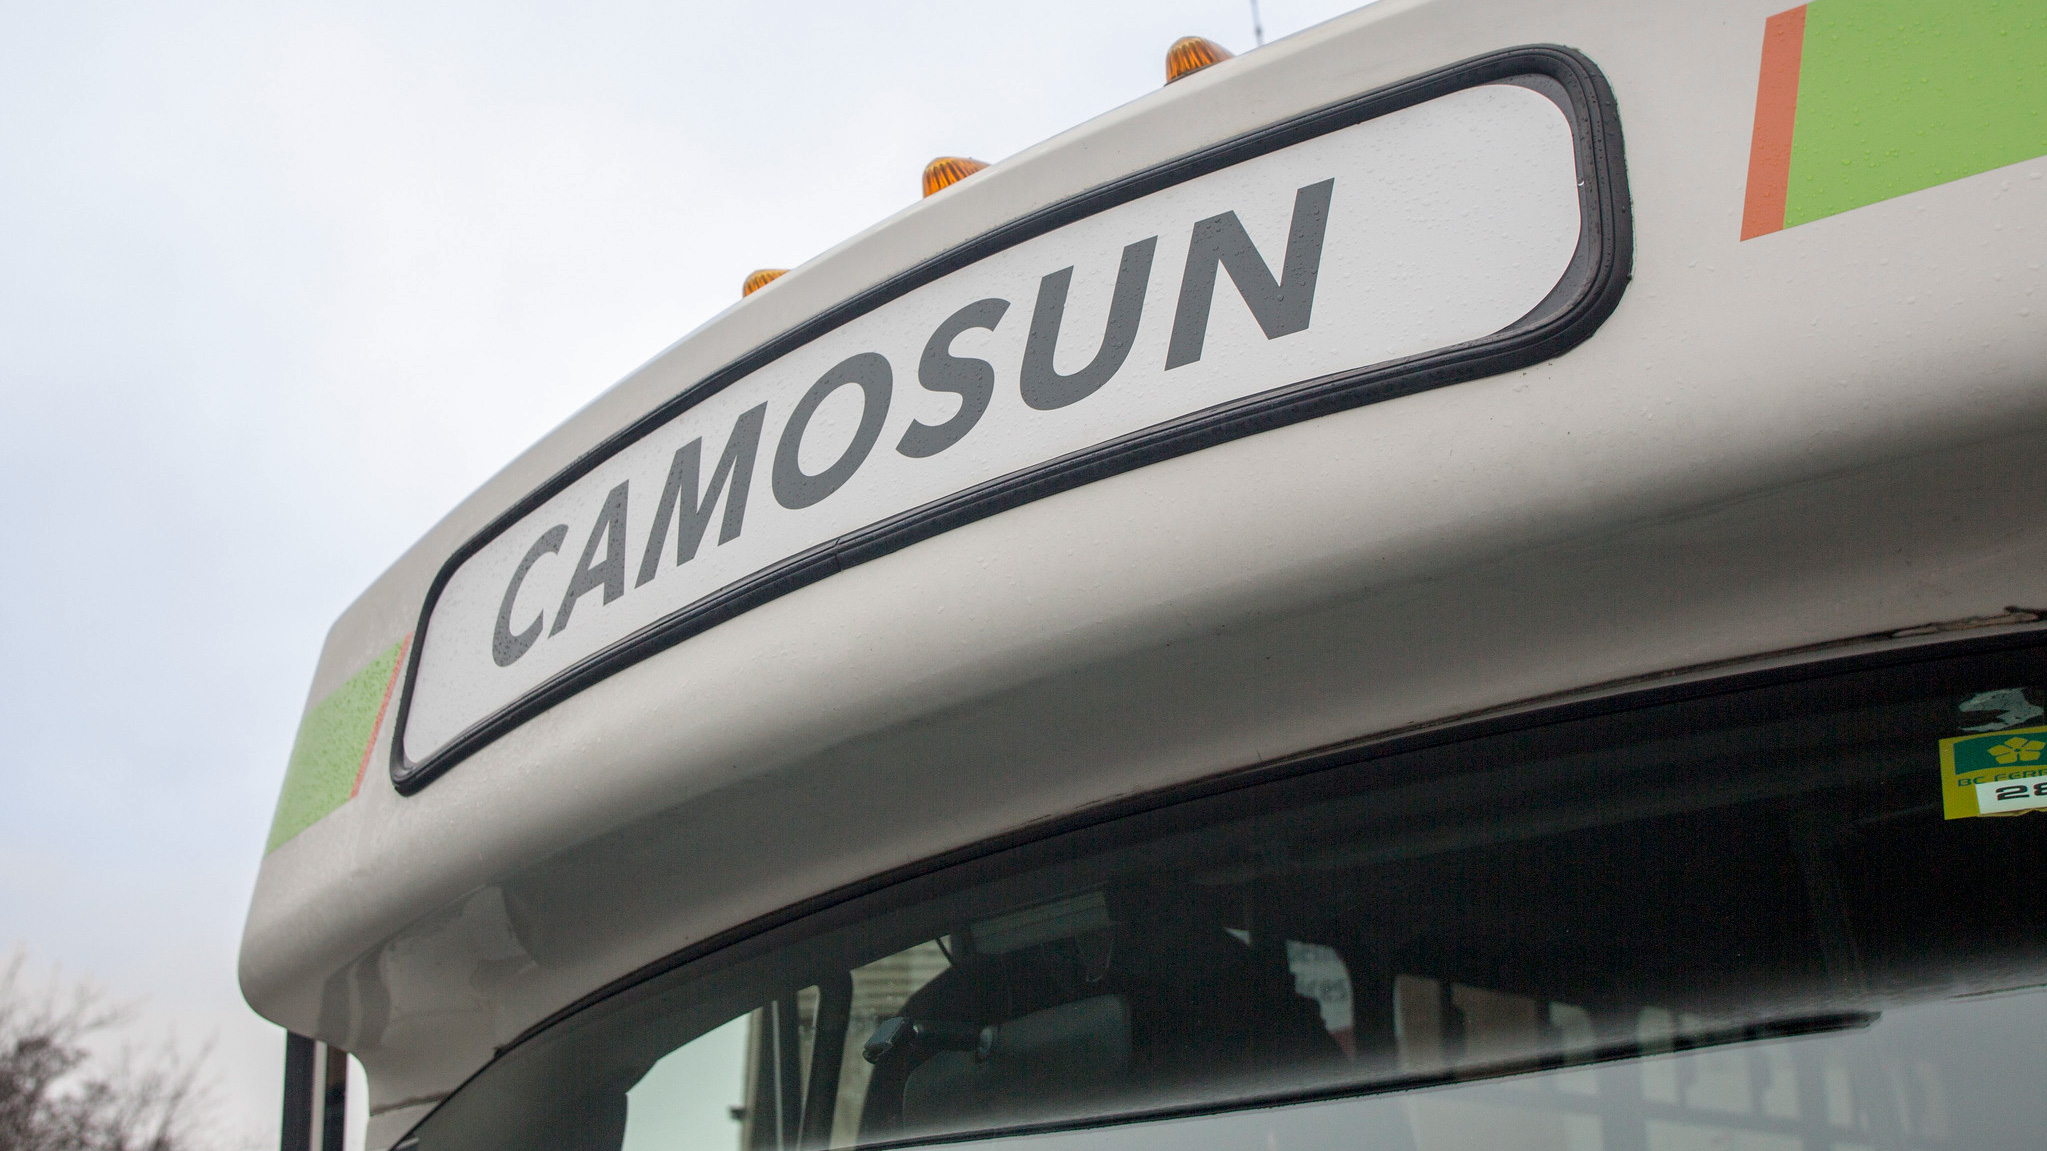 A city of Victoria bus driving the Camosun bus route